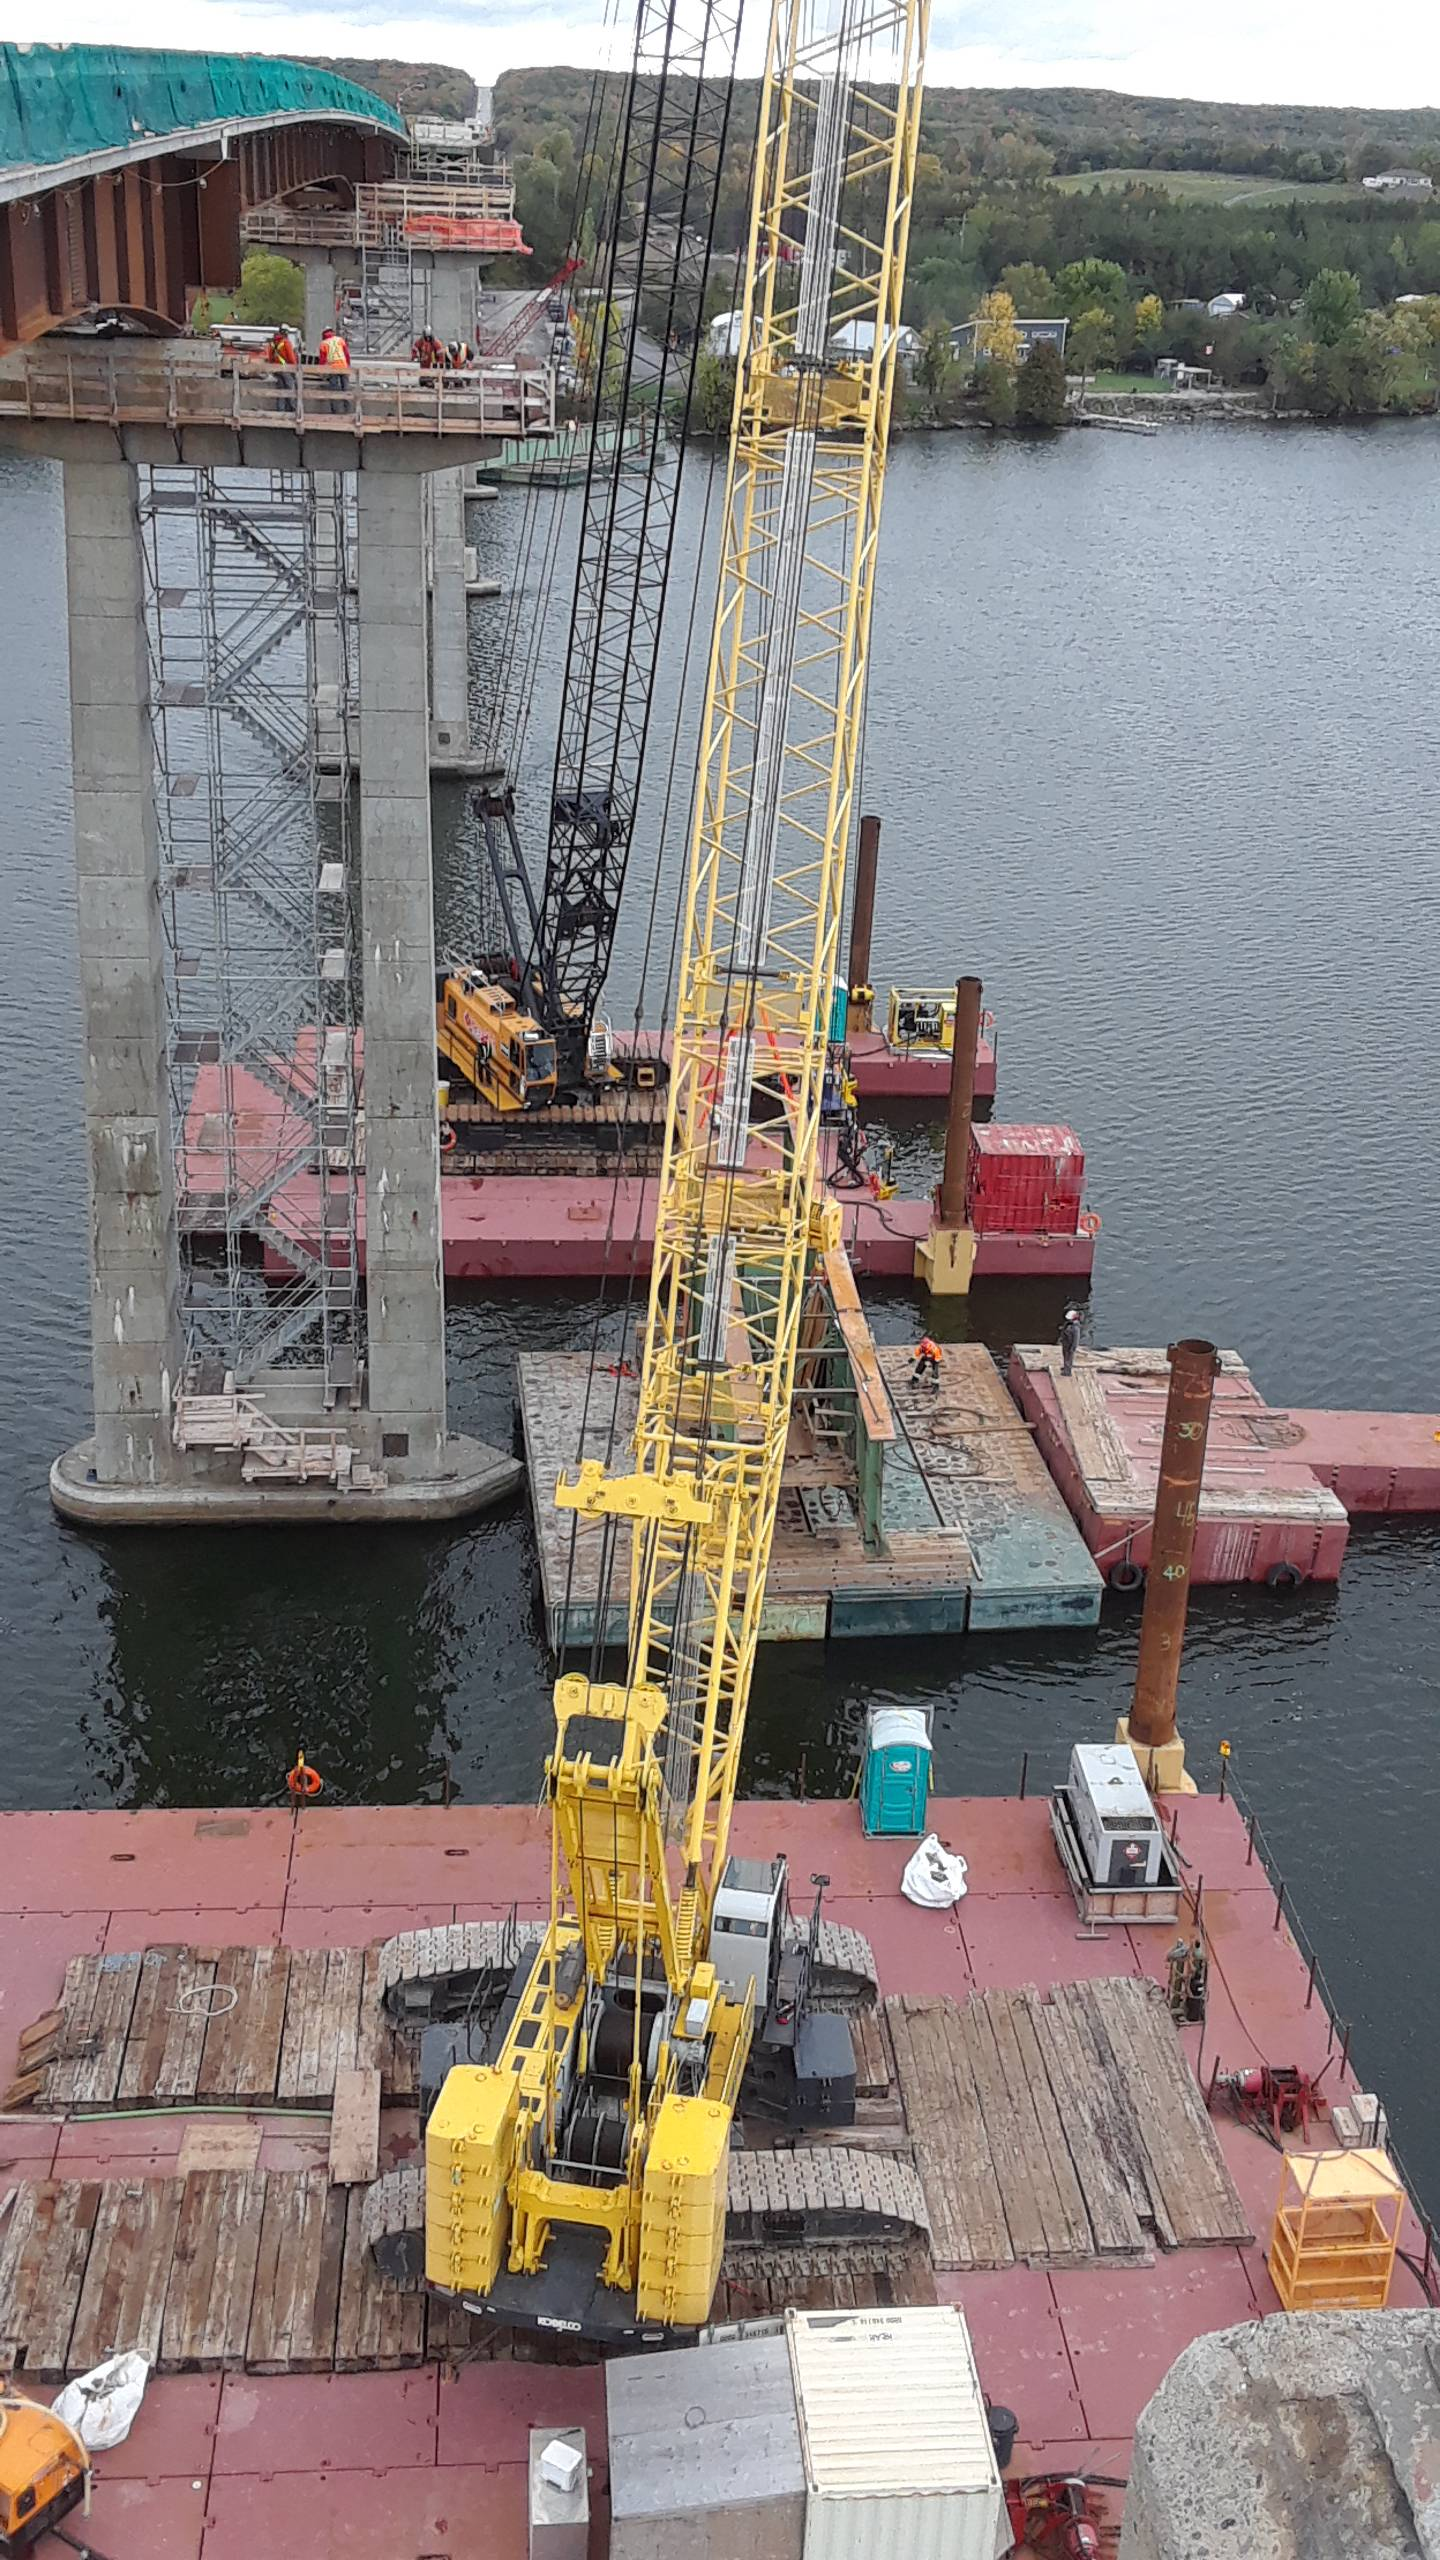 Hammer Head girder being placed on the barge